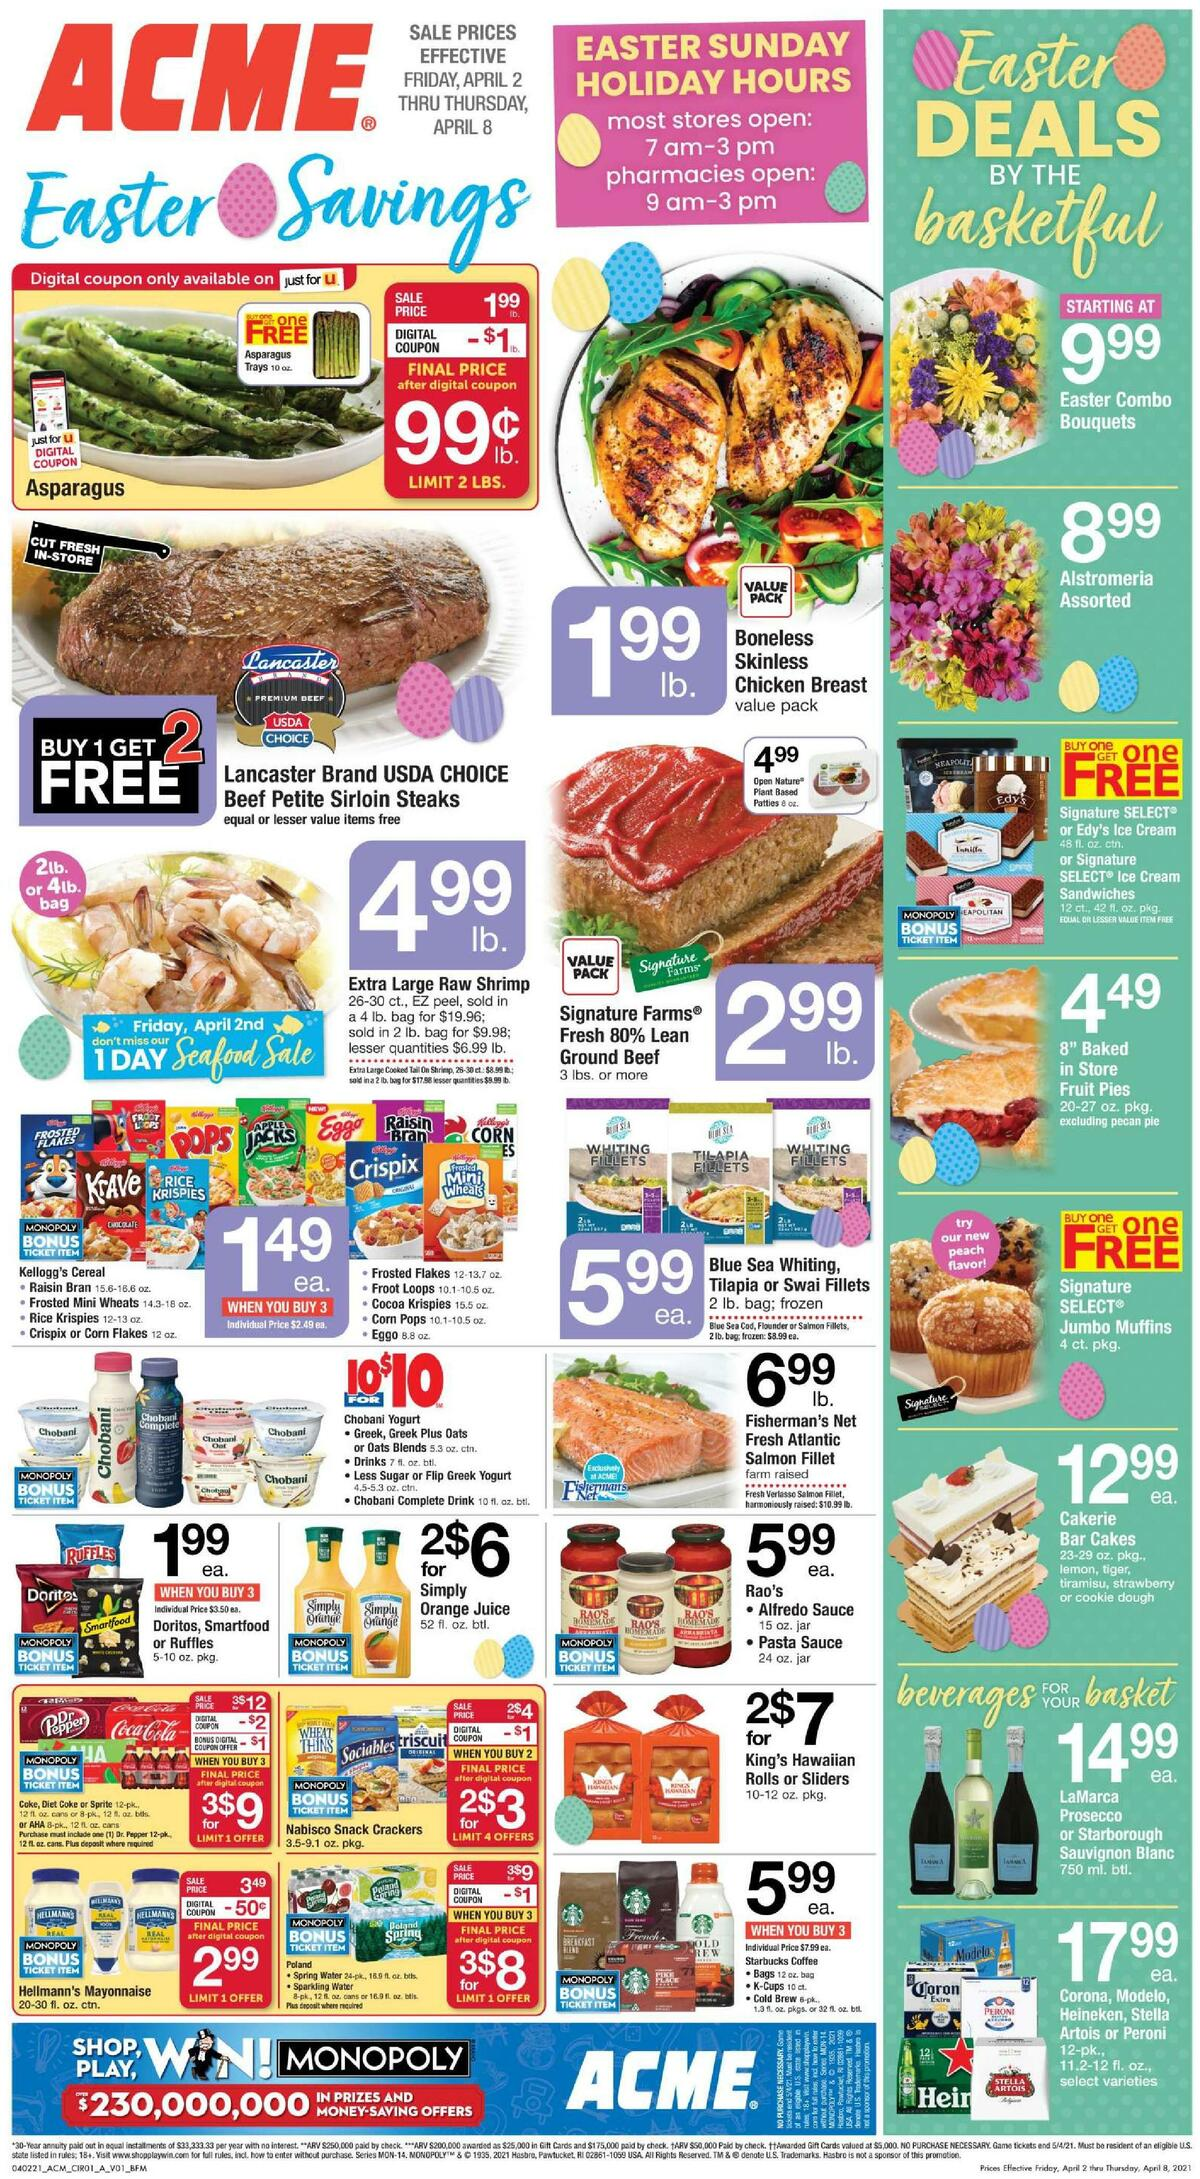 ACME Markets Weekly Ad from April 2